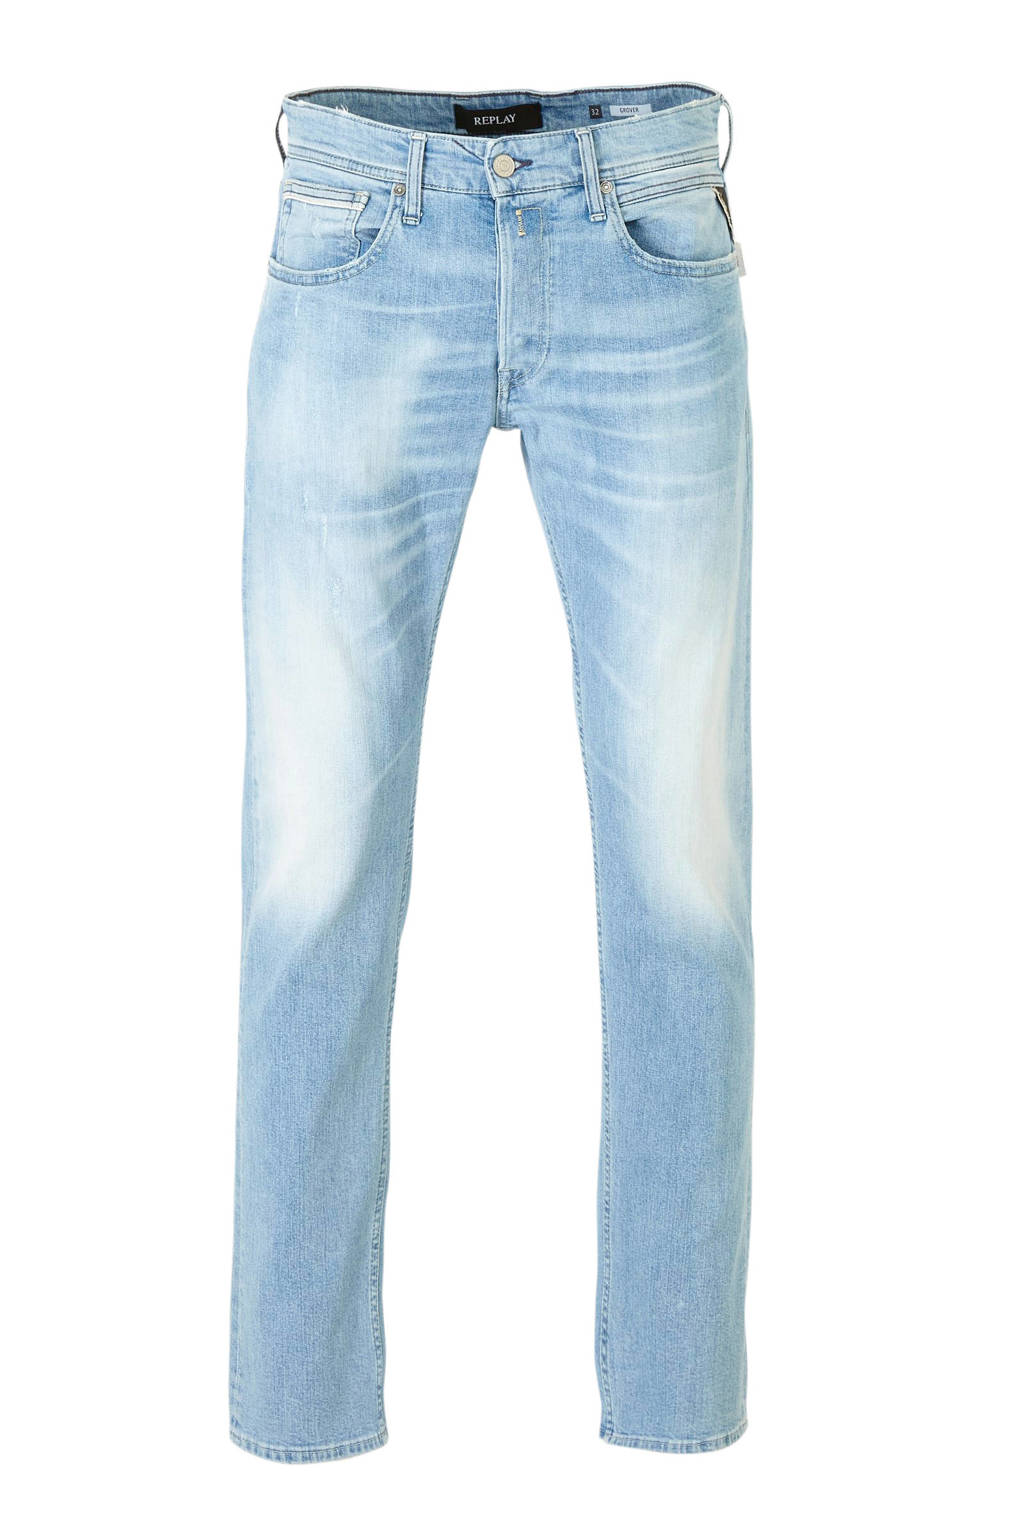 REPLAY straight fit jeans Grover light blue, Light Blue